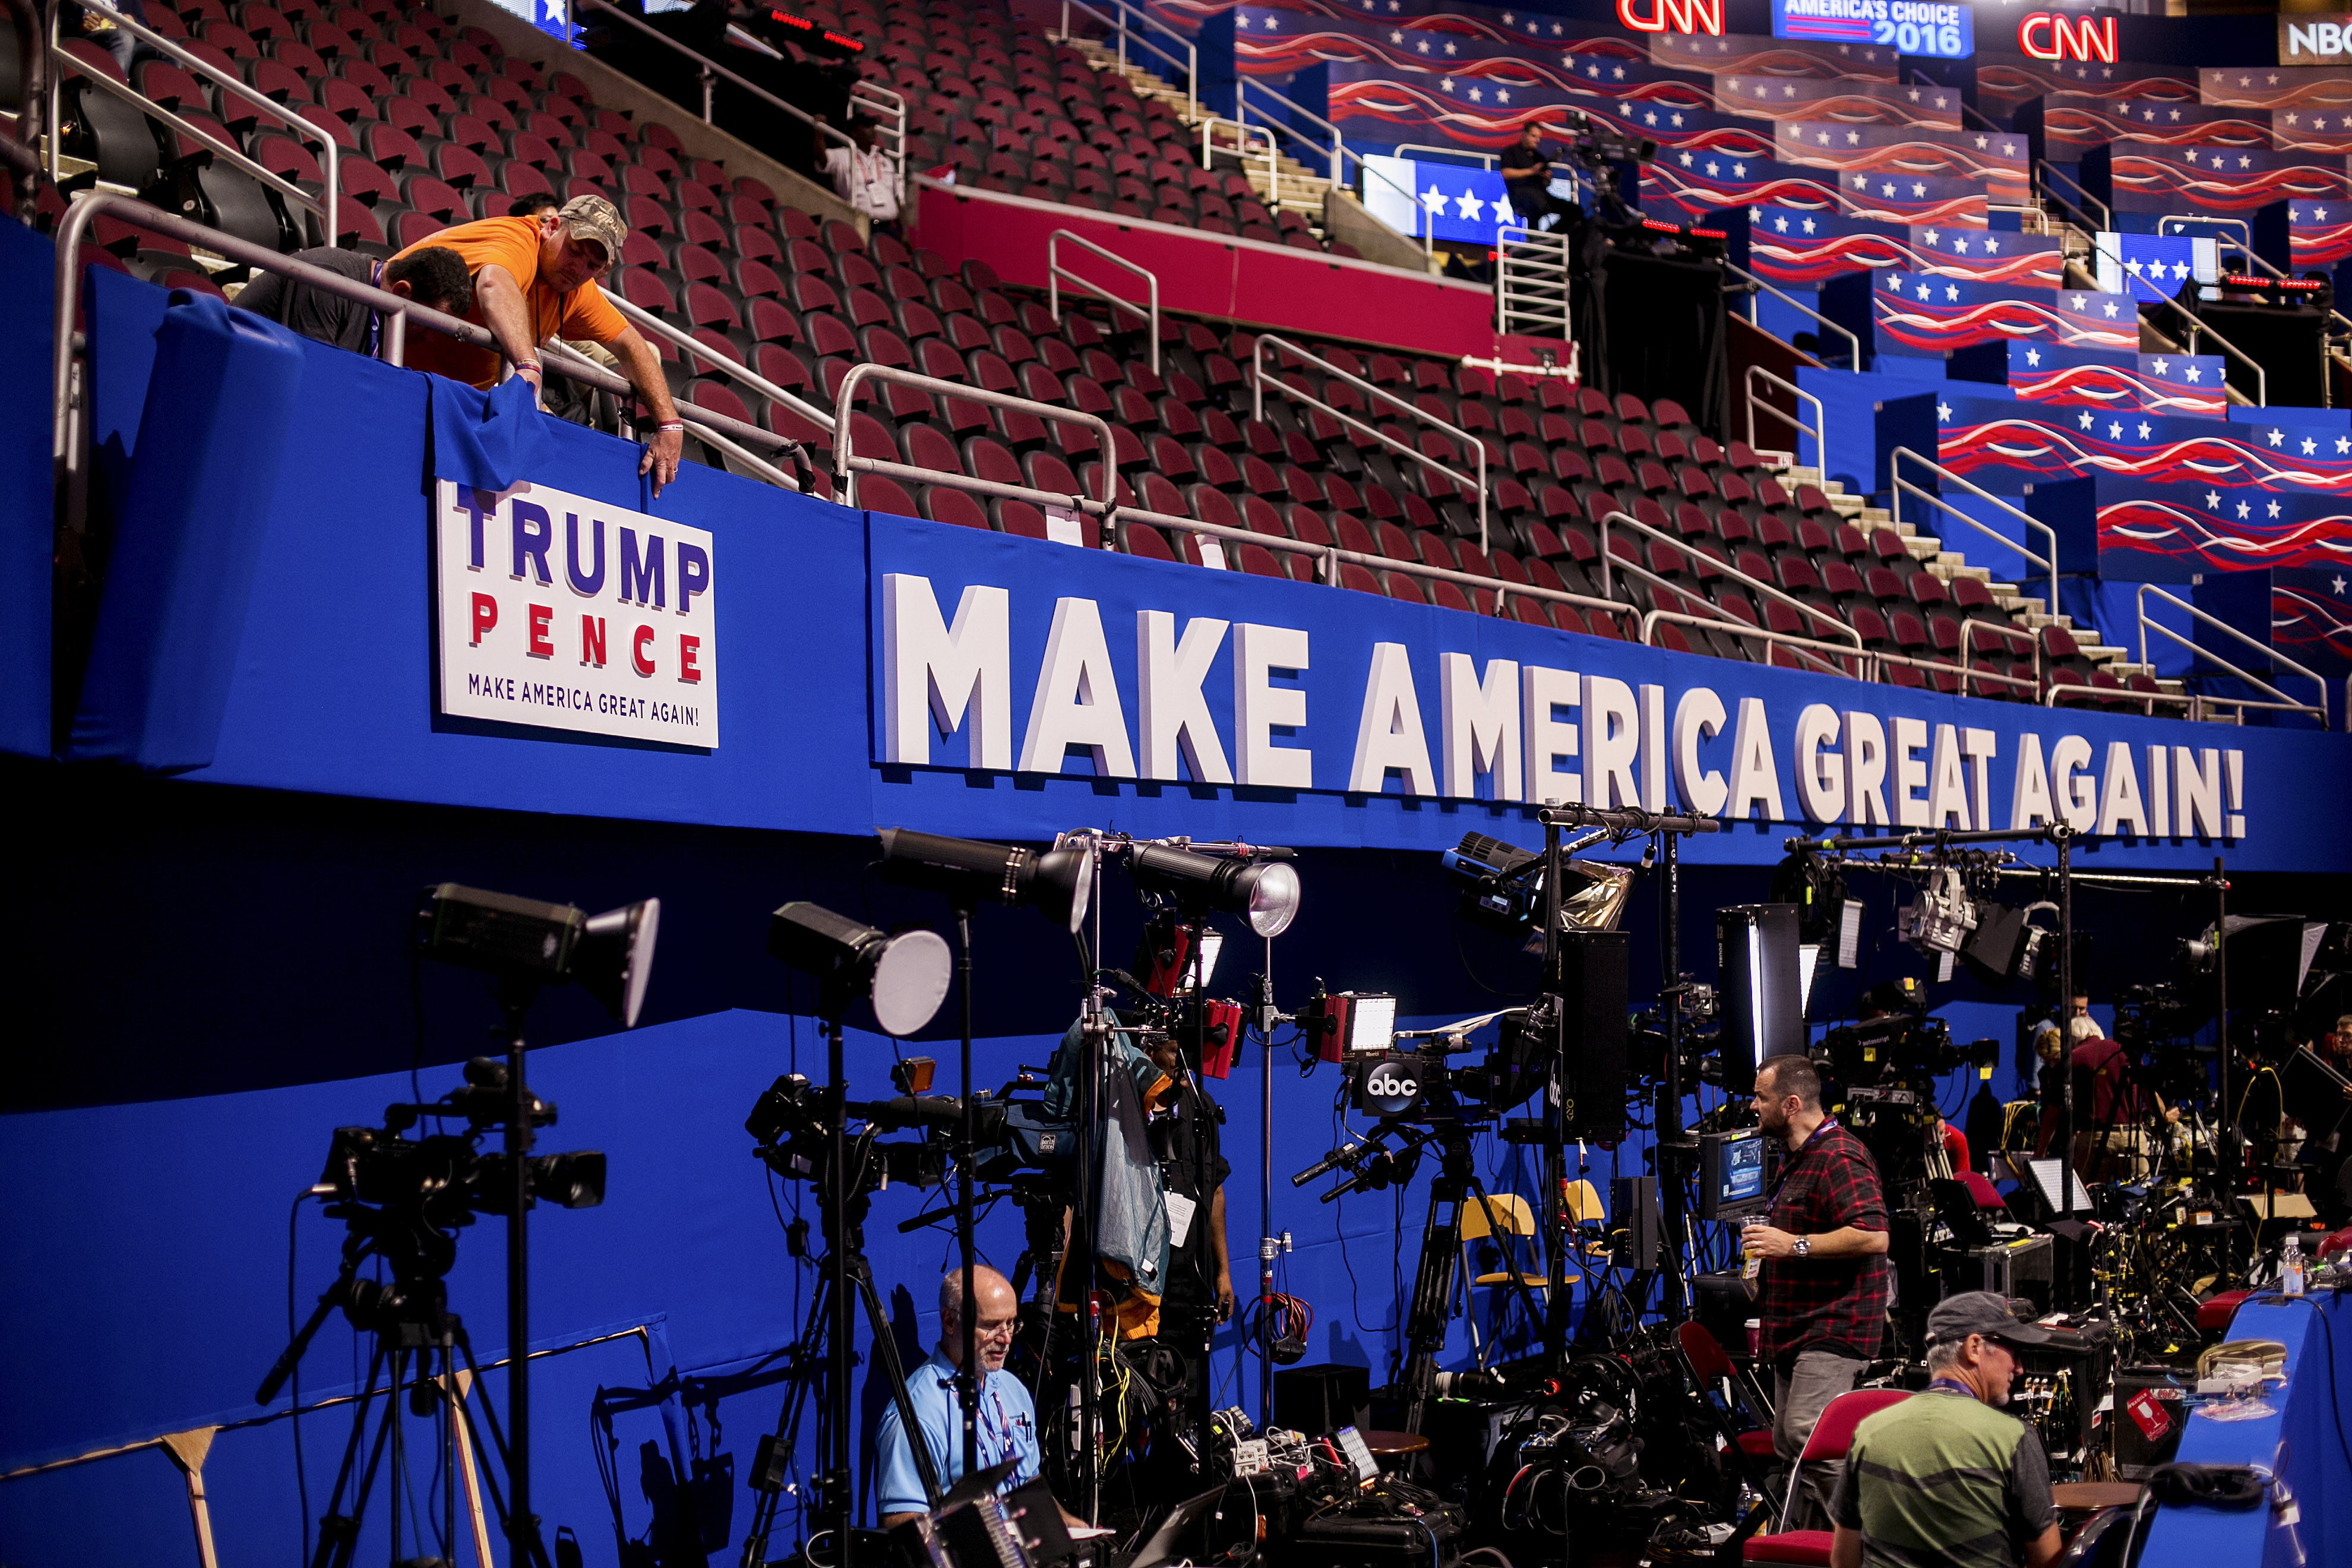 A Donald Trump and Mike Pence sign is placed inside Quicken Loans Arena before the Republican National Convention in Cleveland on July 17. (Sam Hodgson/New York Times)